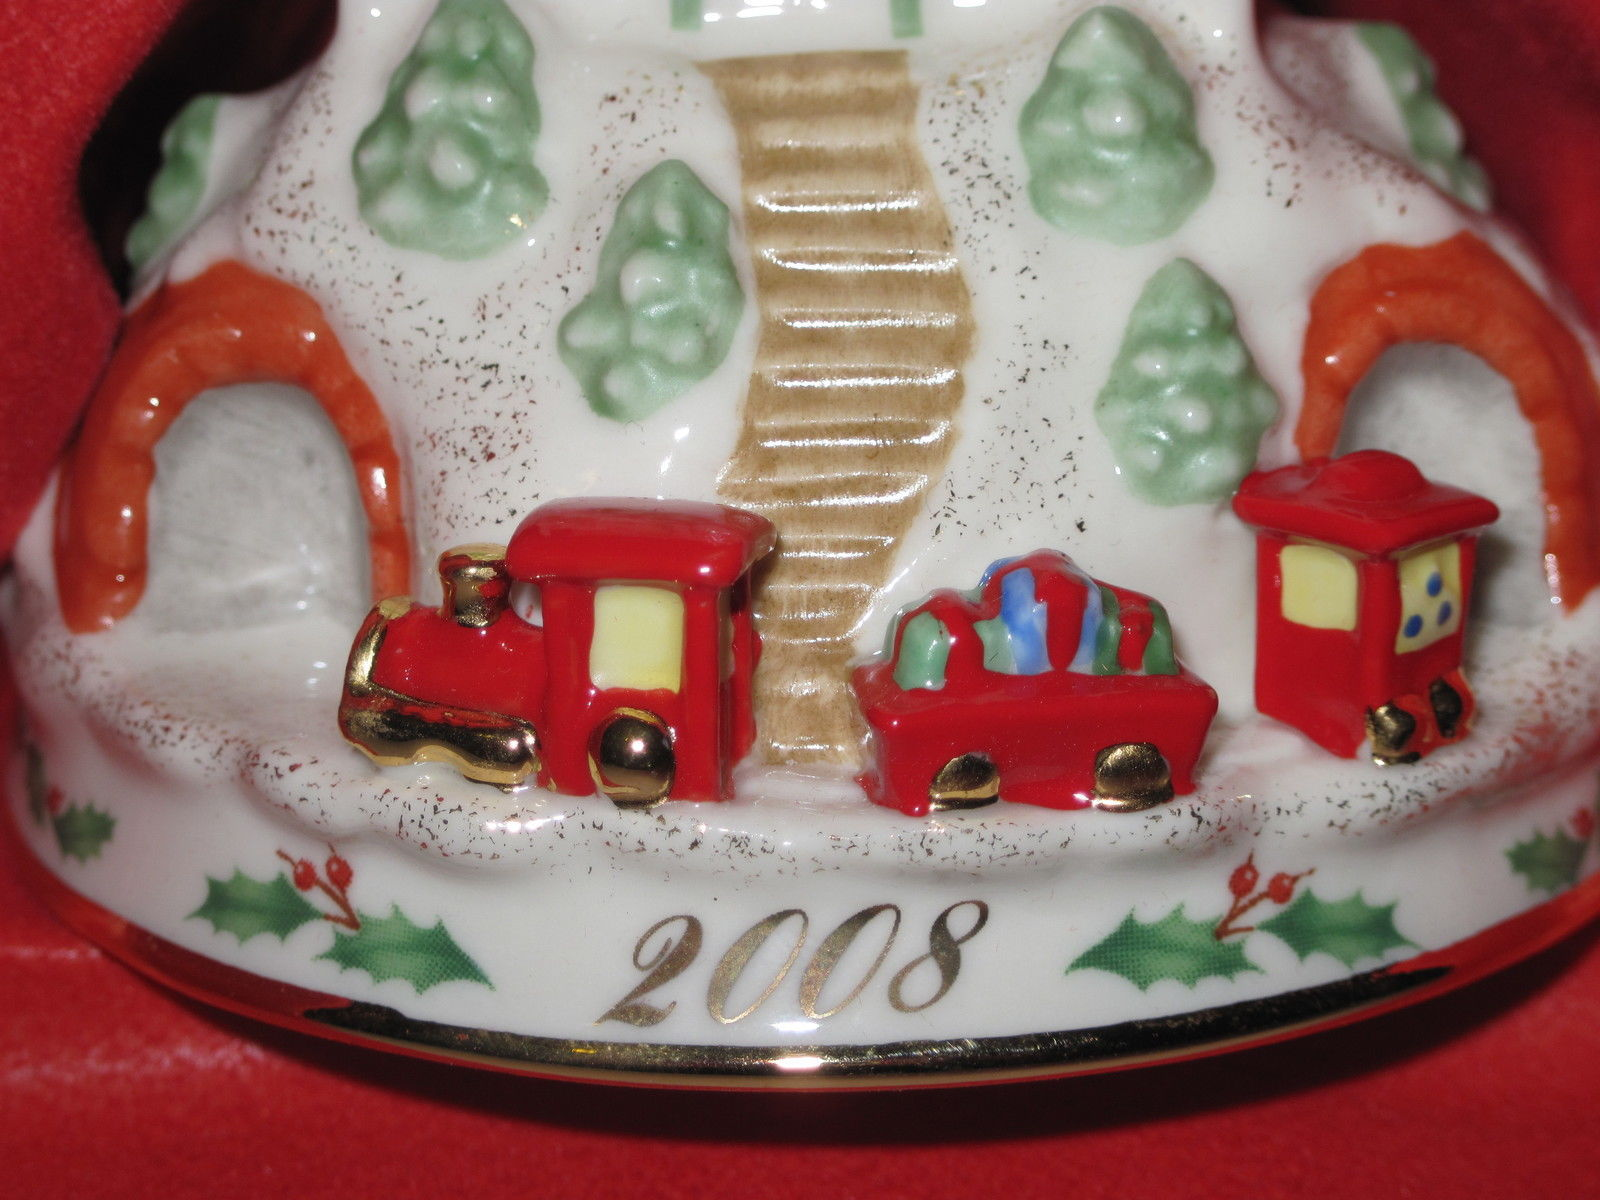 NIB LENOX 2008 Annual Holiday Ride Christmas Ornament Train Station Depot Train image 3